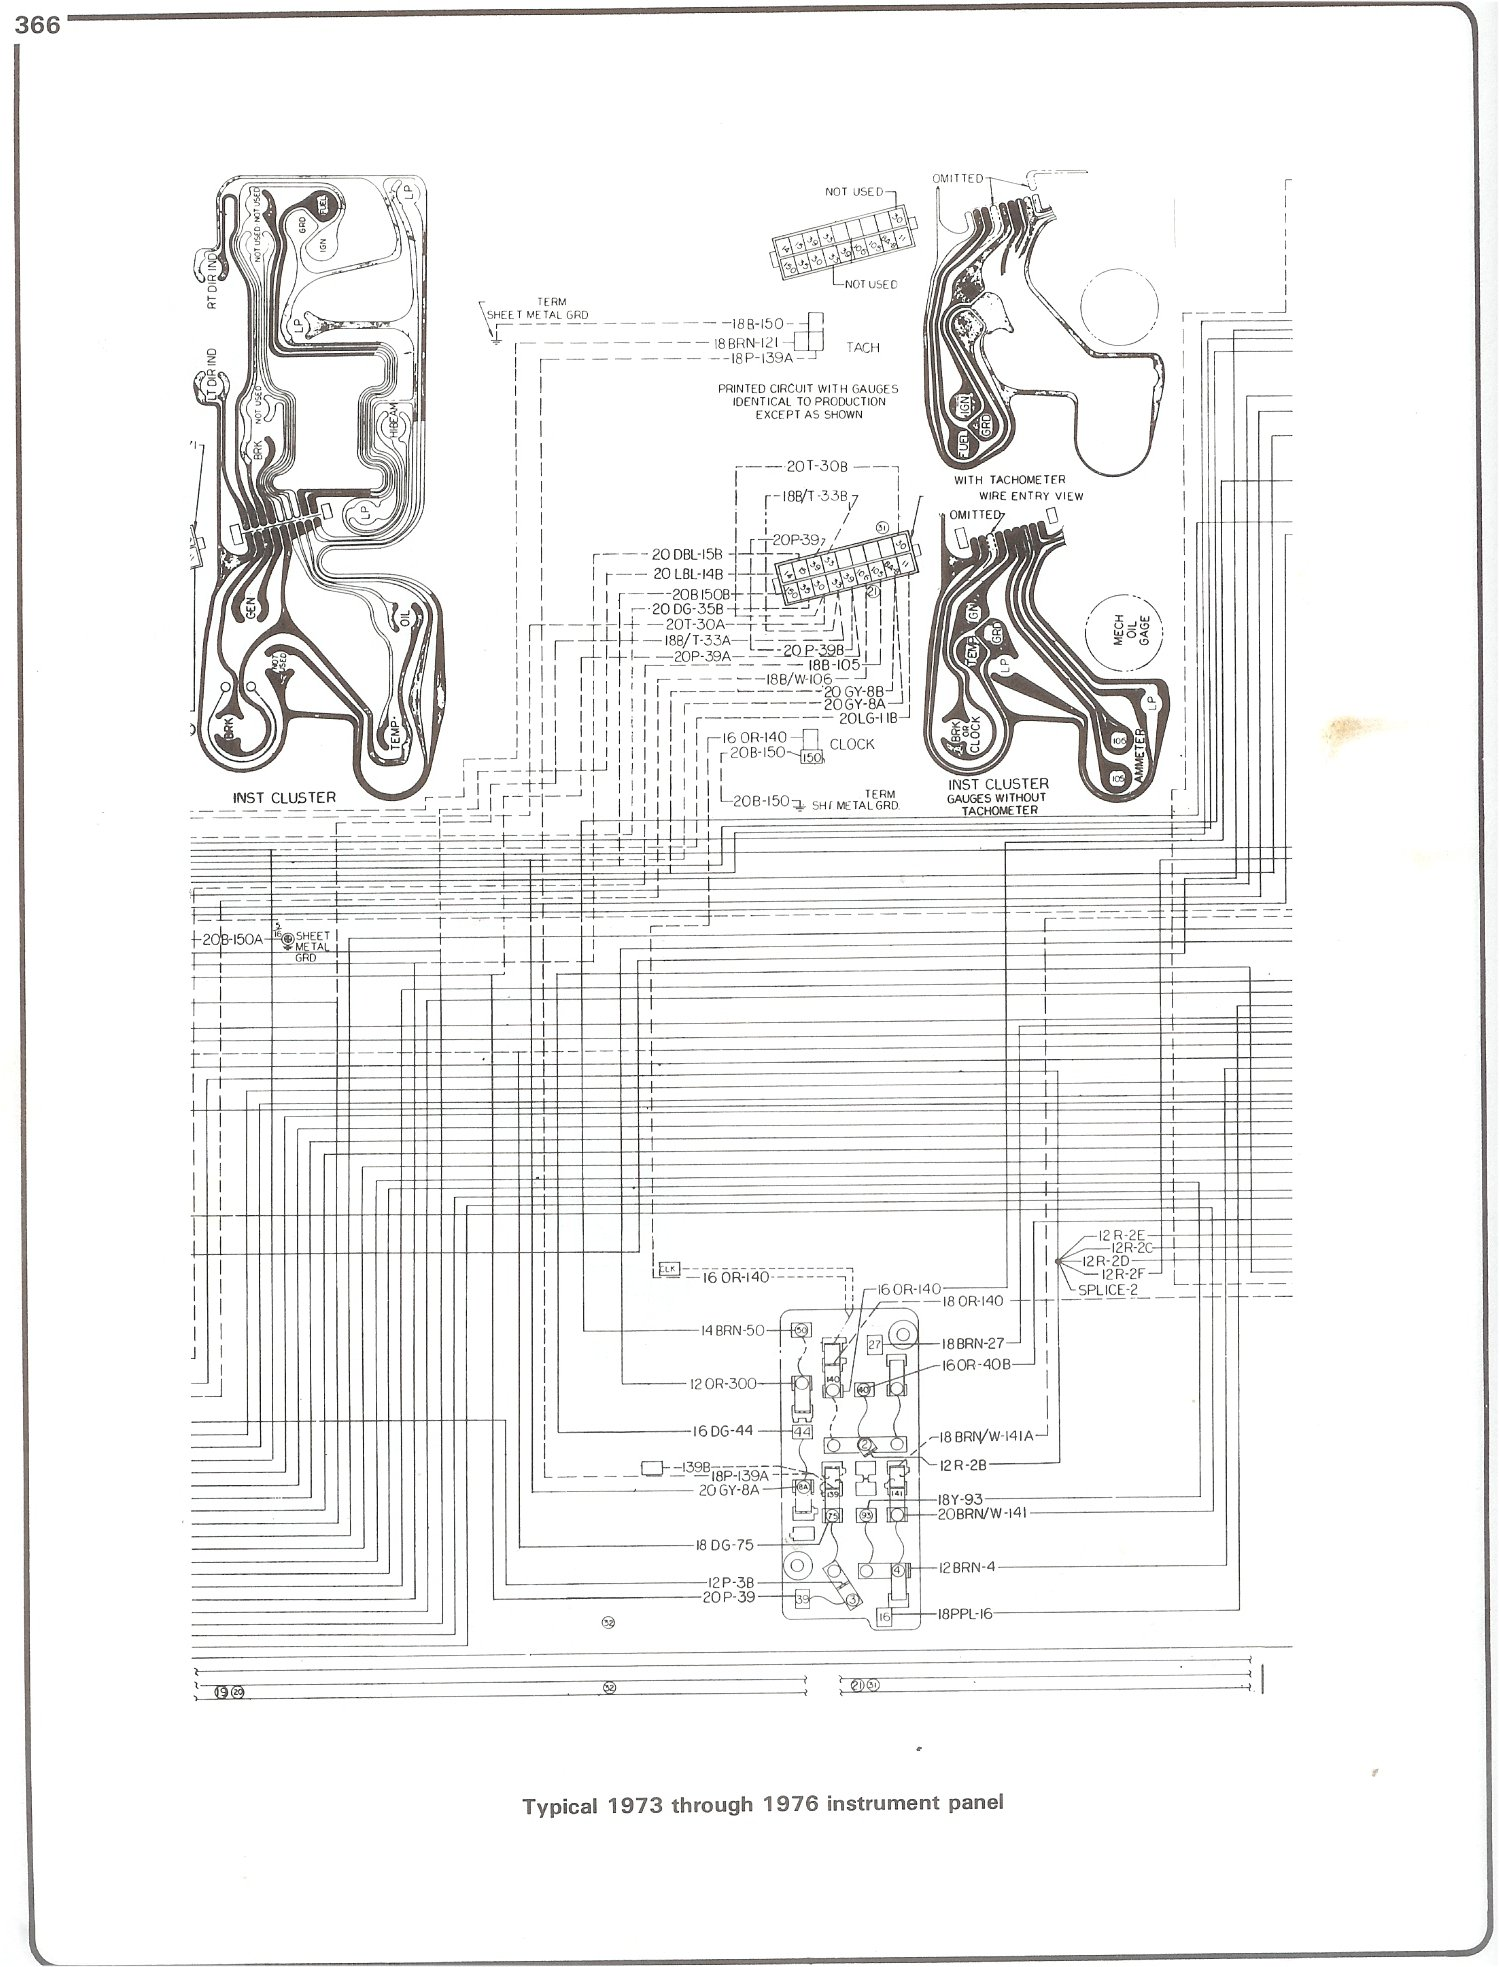 73 76_instrument complete 73 87 wiring diagrams 1978 chevy truck fuse box diagram at reclaimingppi.co